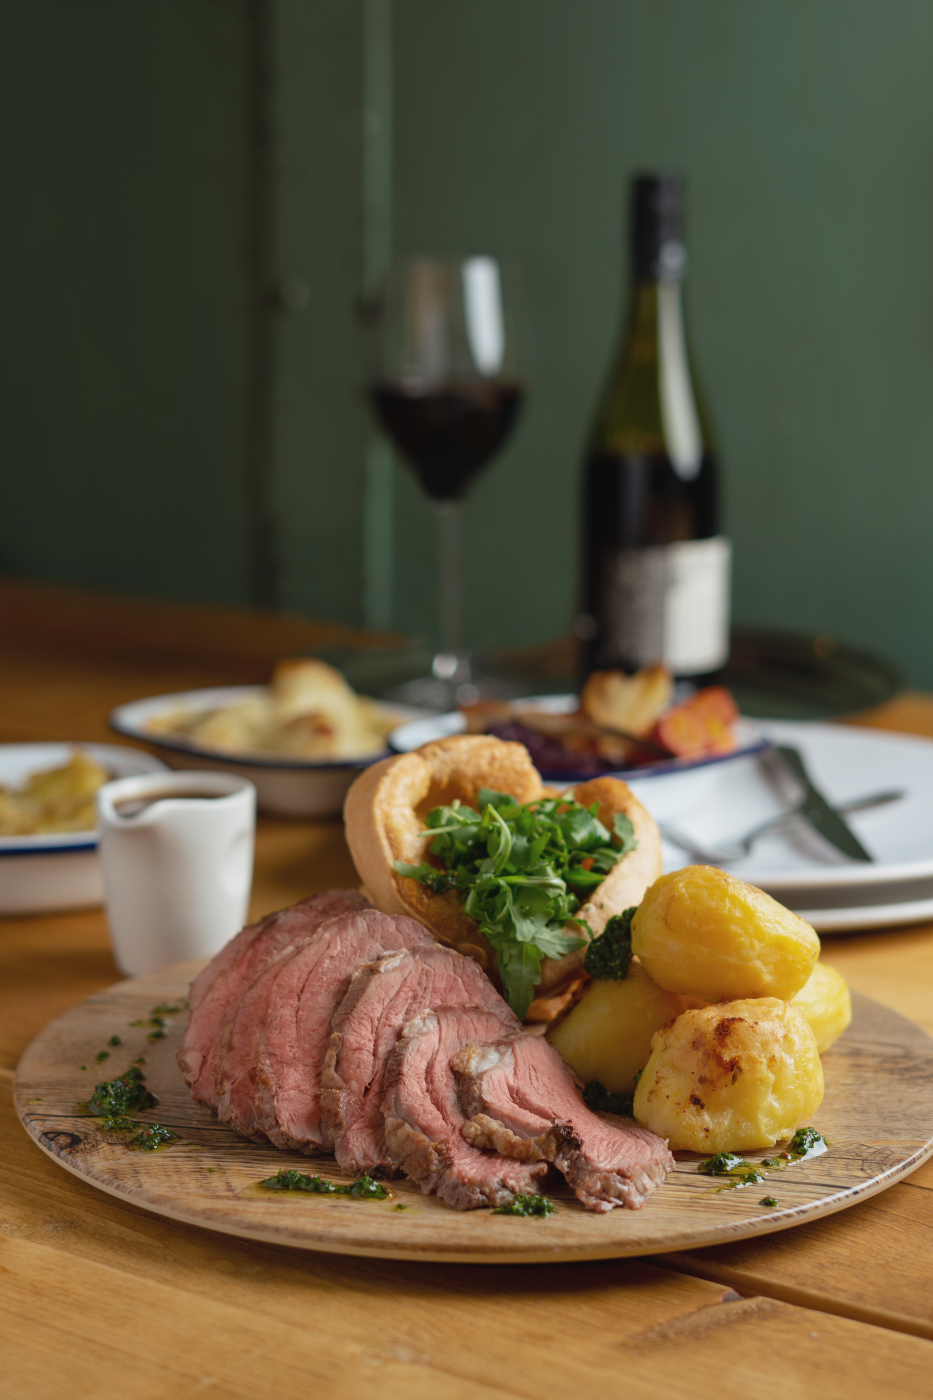 With new carvery social distancing measures in place we have designed a carvery lamb leg served at your table. To enquire please send an email to foodservice@alliancenz.co.uk and one of our team will be in touch☺️ (Photographer @jolro )